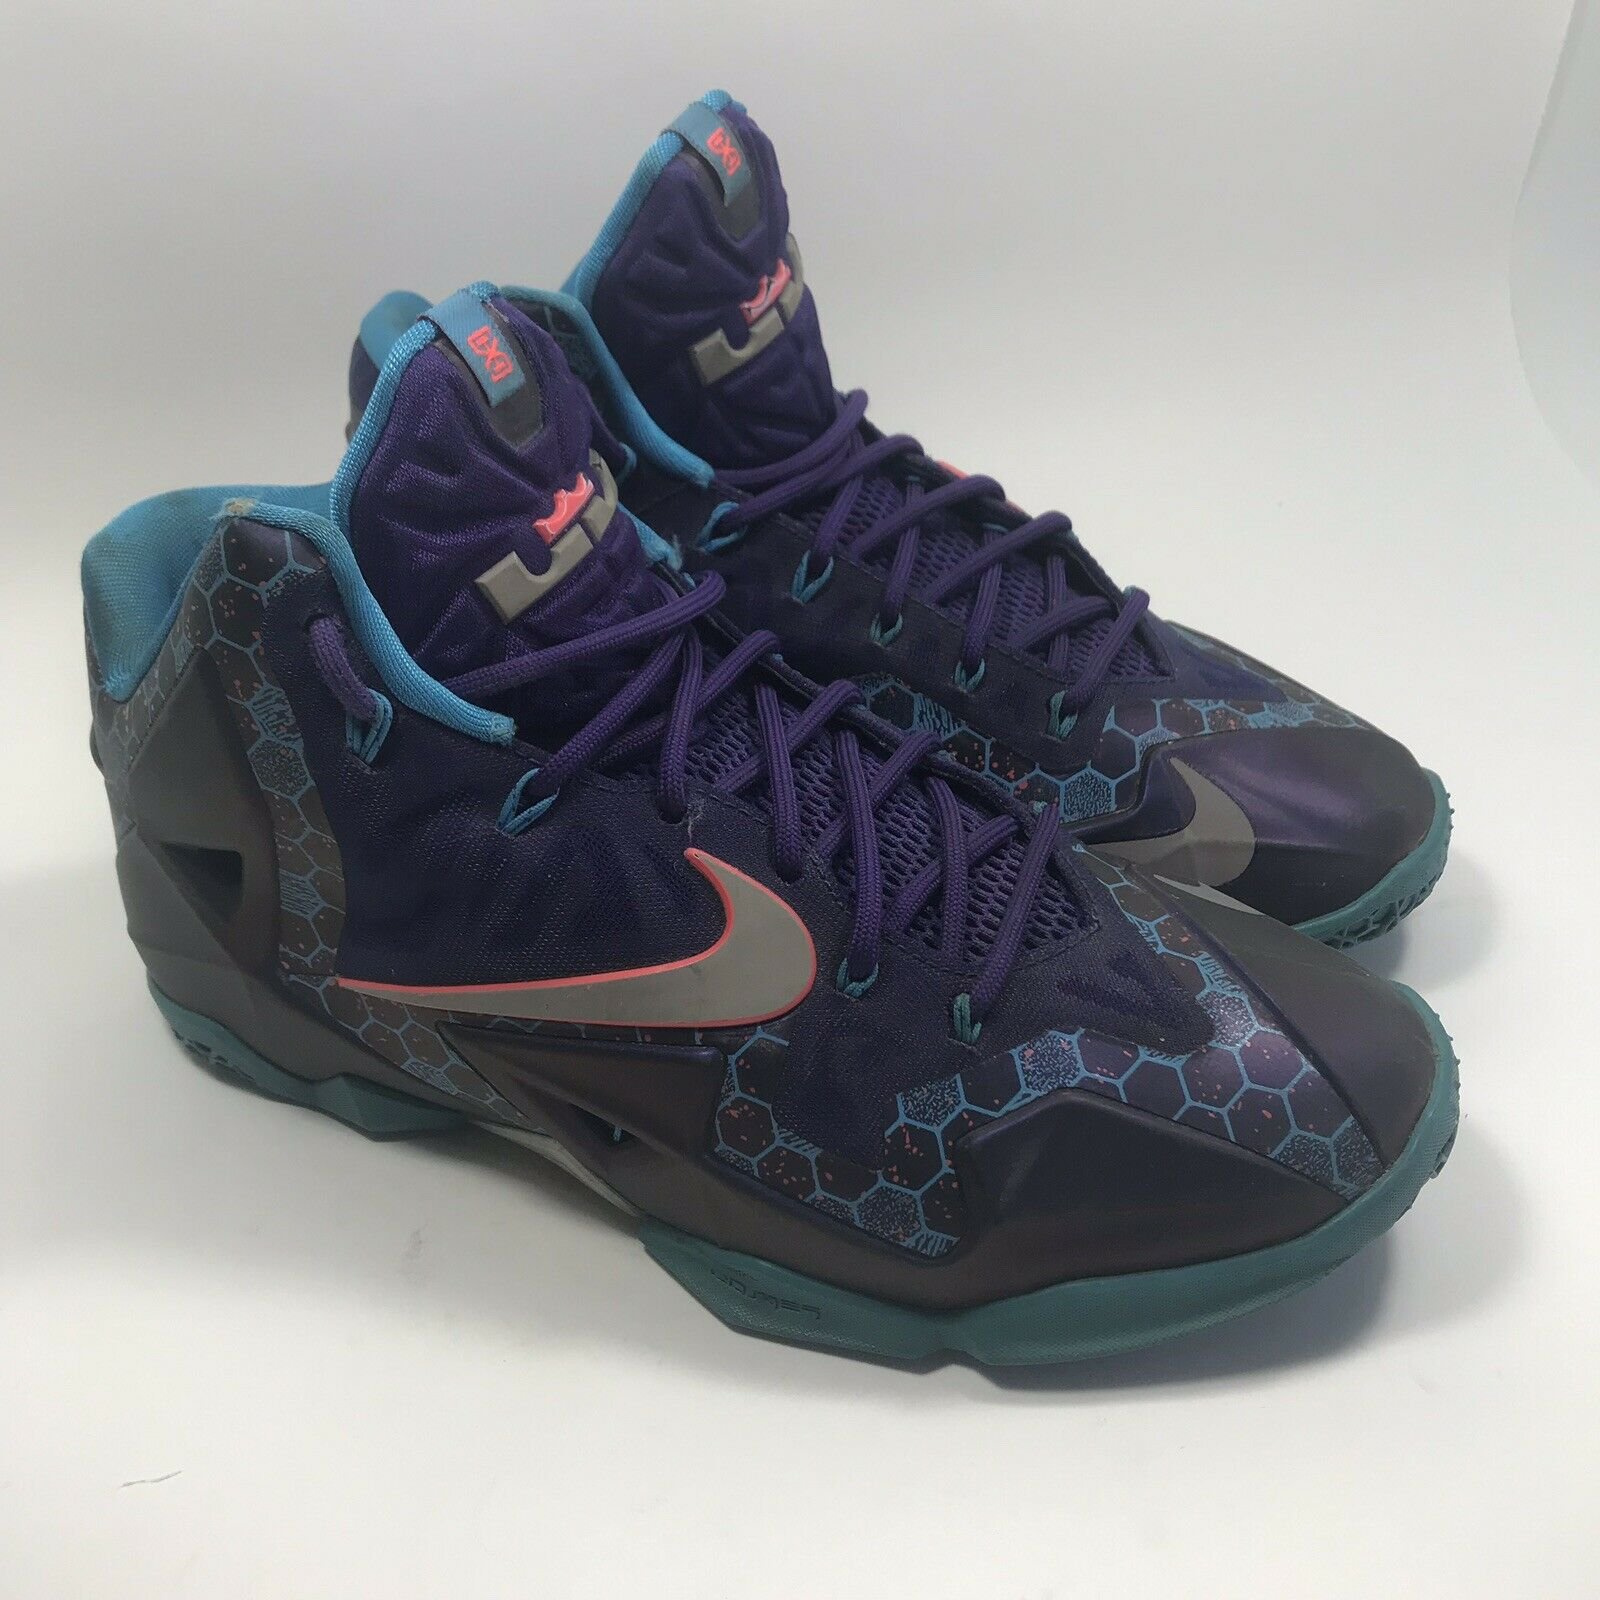 Nike Lebron Xl 11 Summit Lake Hornets Purple bluee Silver 616175 500 Sz 9